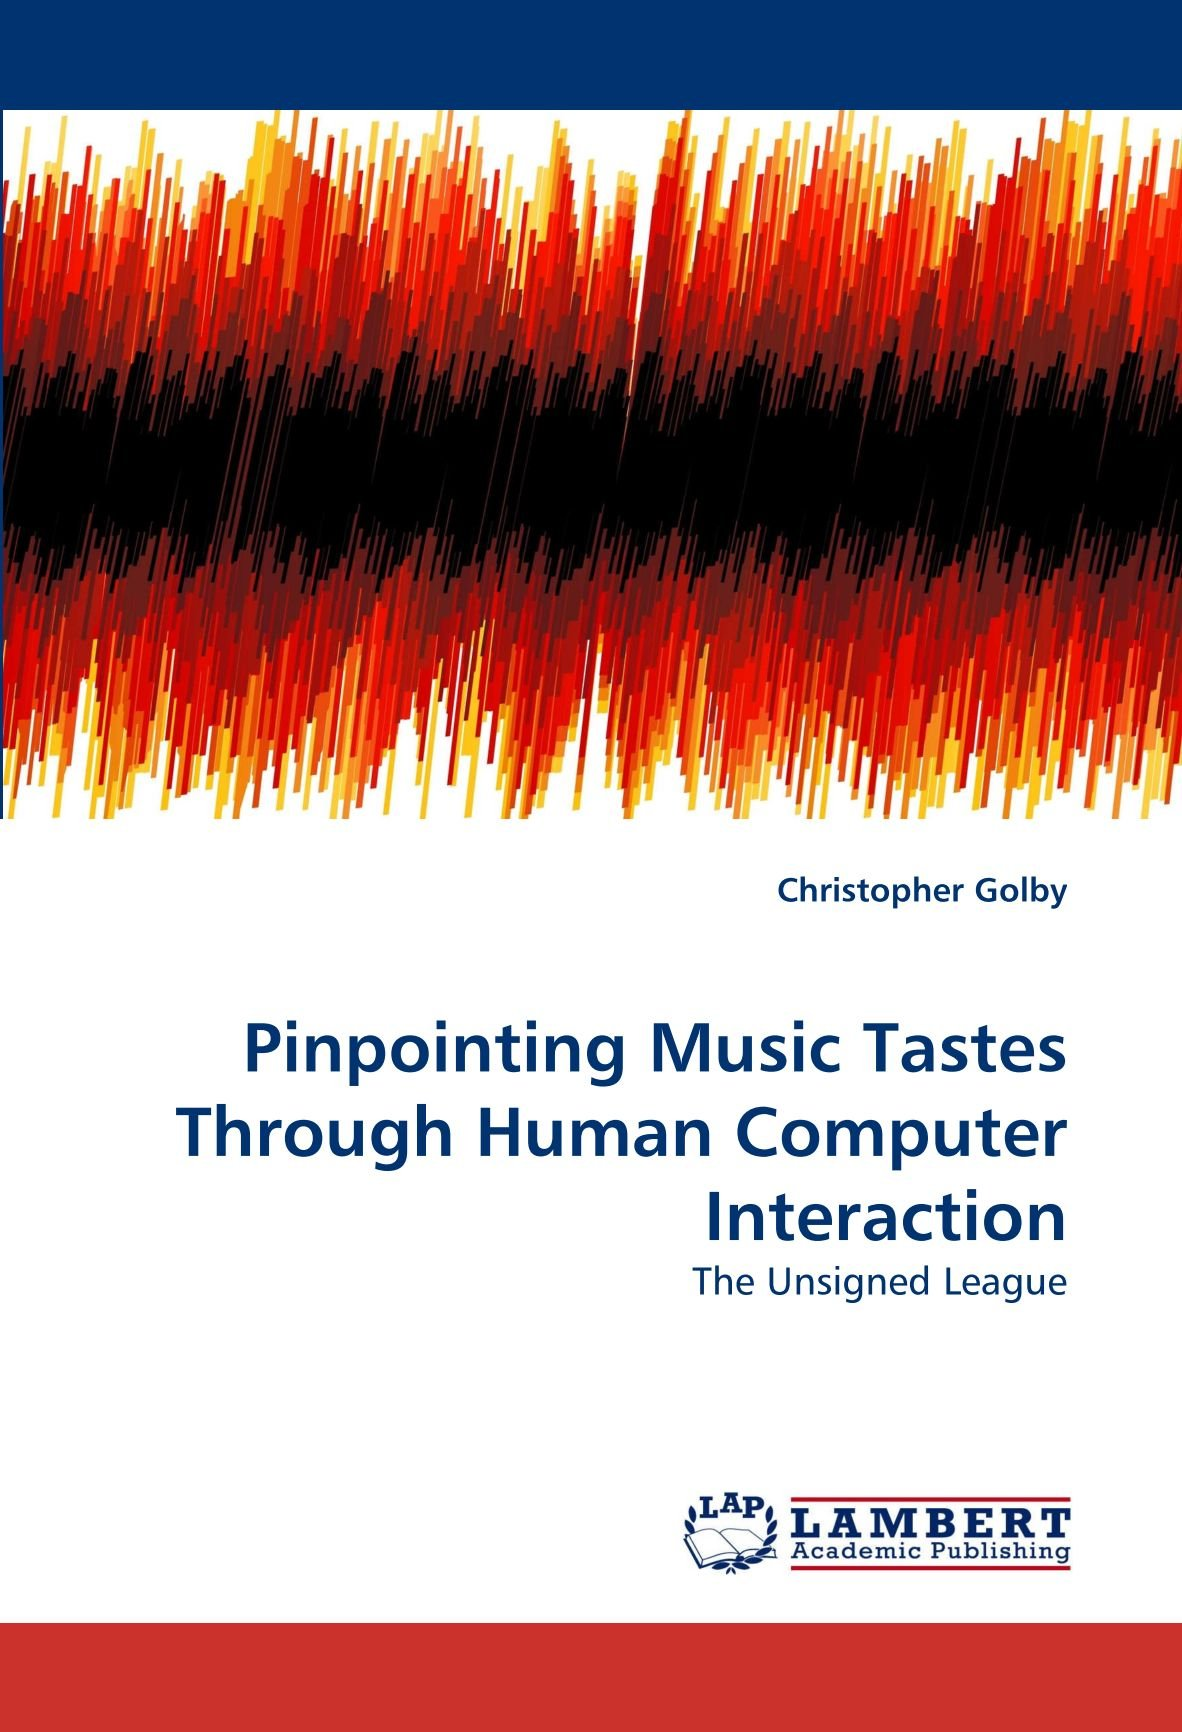 Pinpointing Music Tastes Through Human Computer Interaction: The Unsigned League ebook